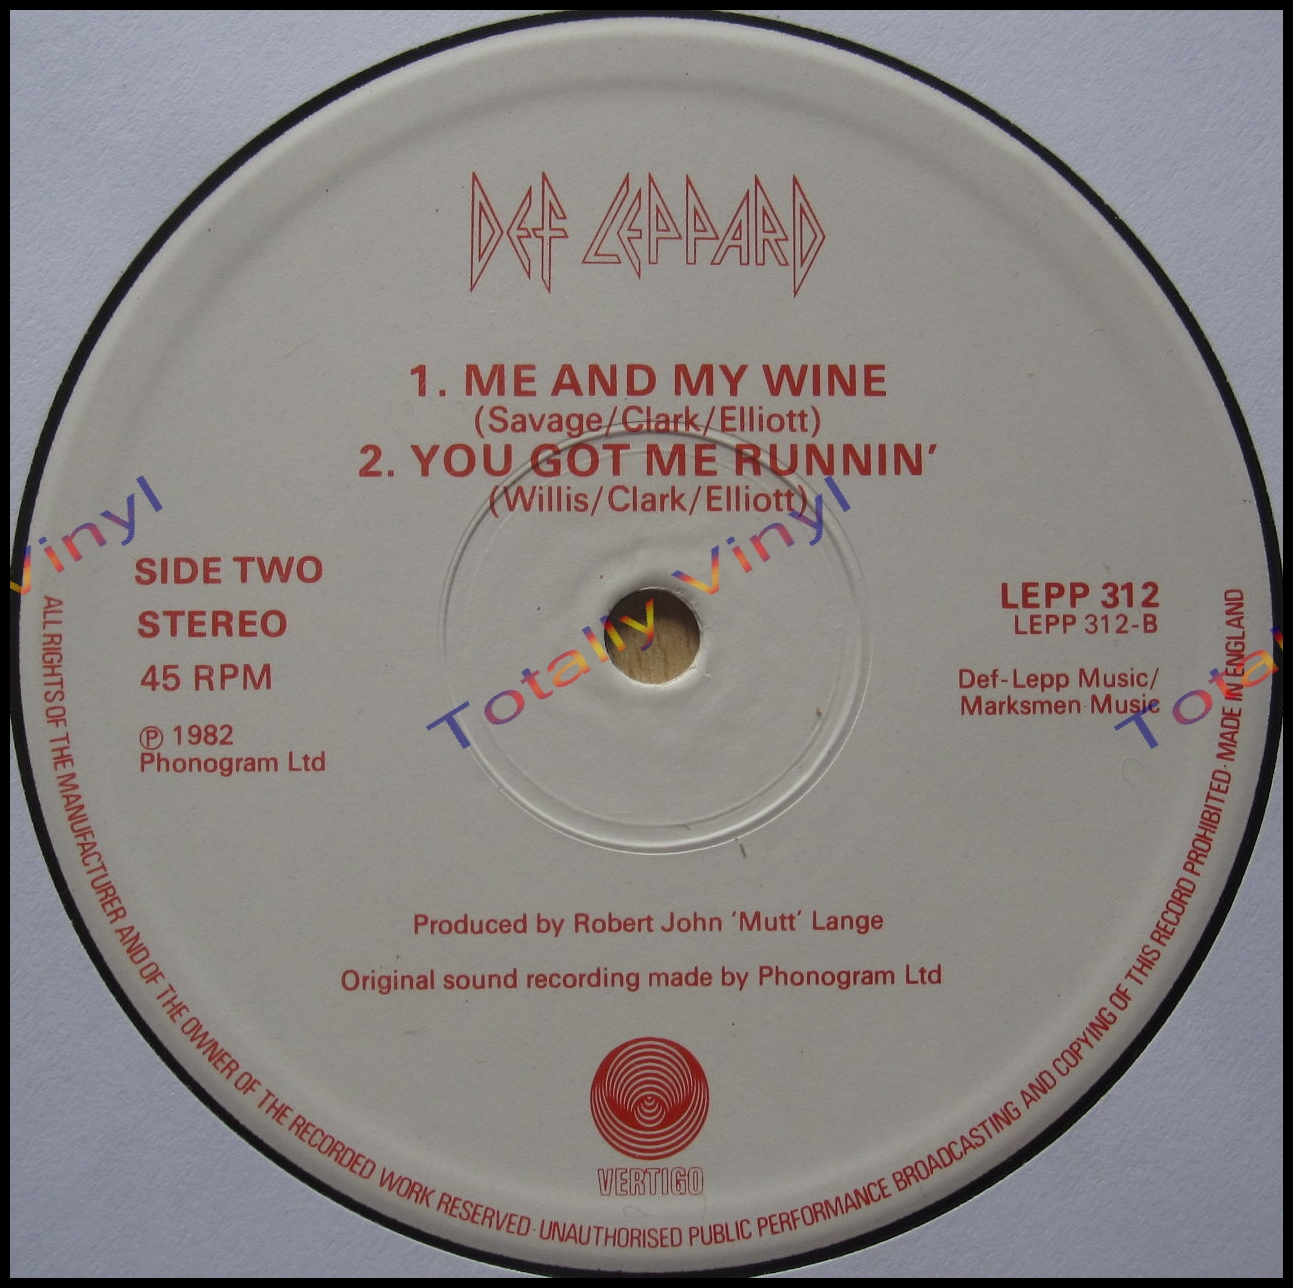 Totally Vinyl Records || Def Leppard - Bringin' on the